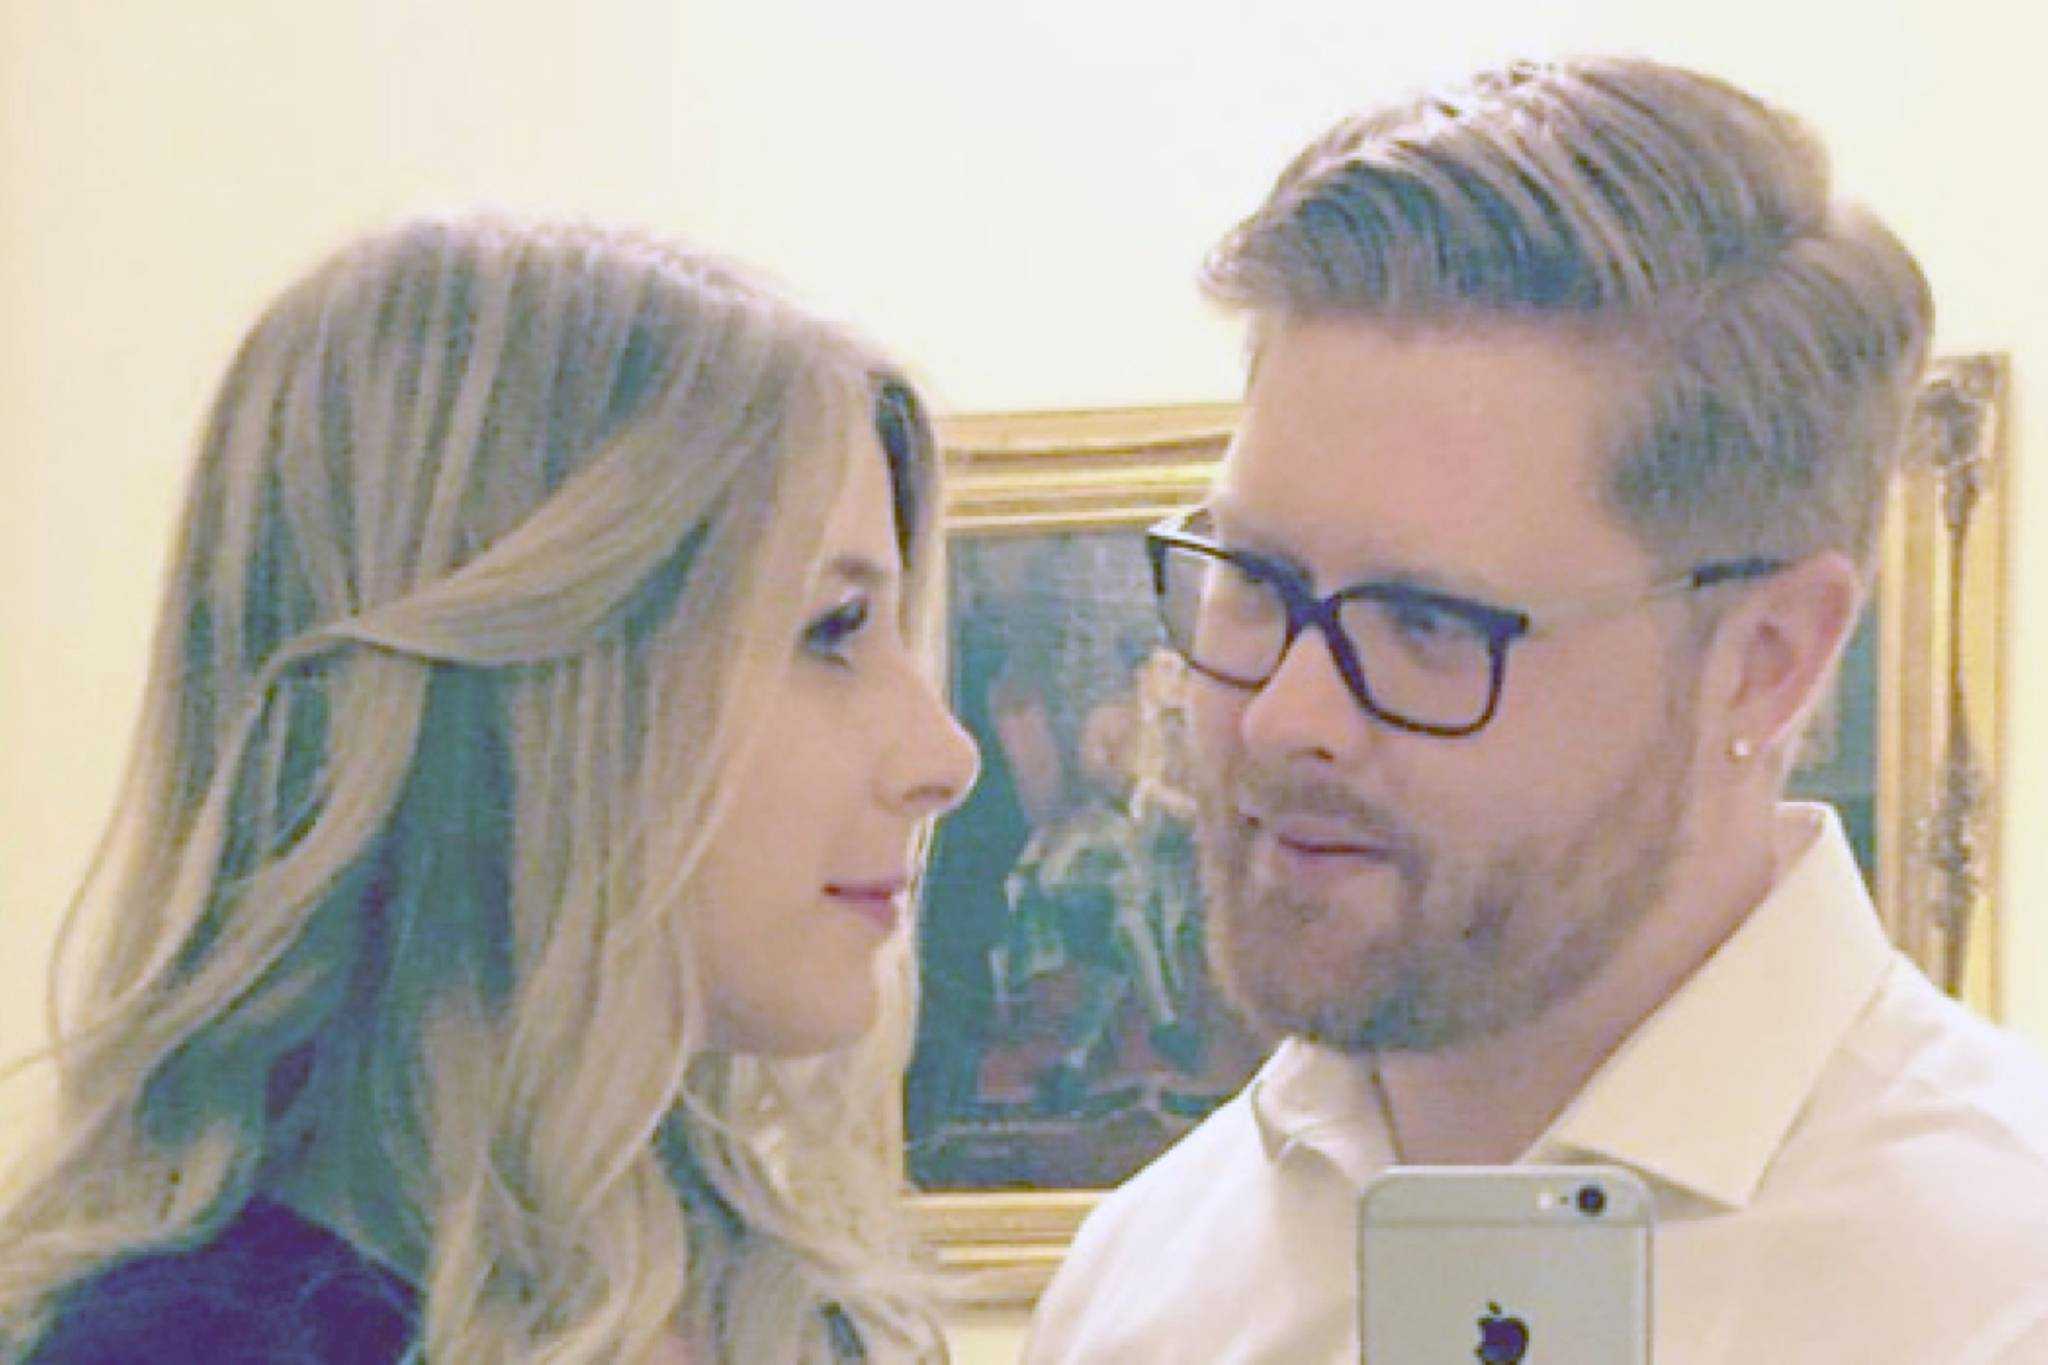 Chrissy Archibald and Tyler Fergusen were engaged to be married. (Photo: Mark Fergusen/Facebook)